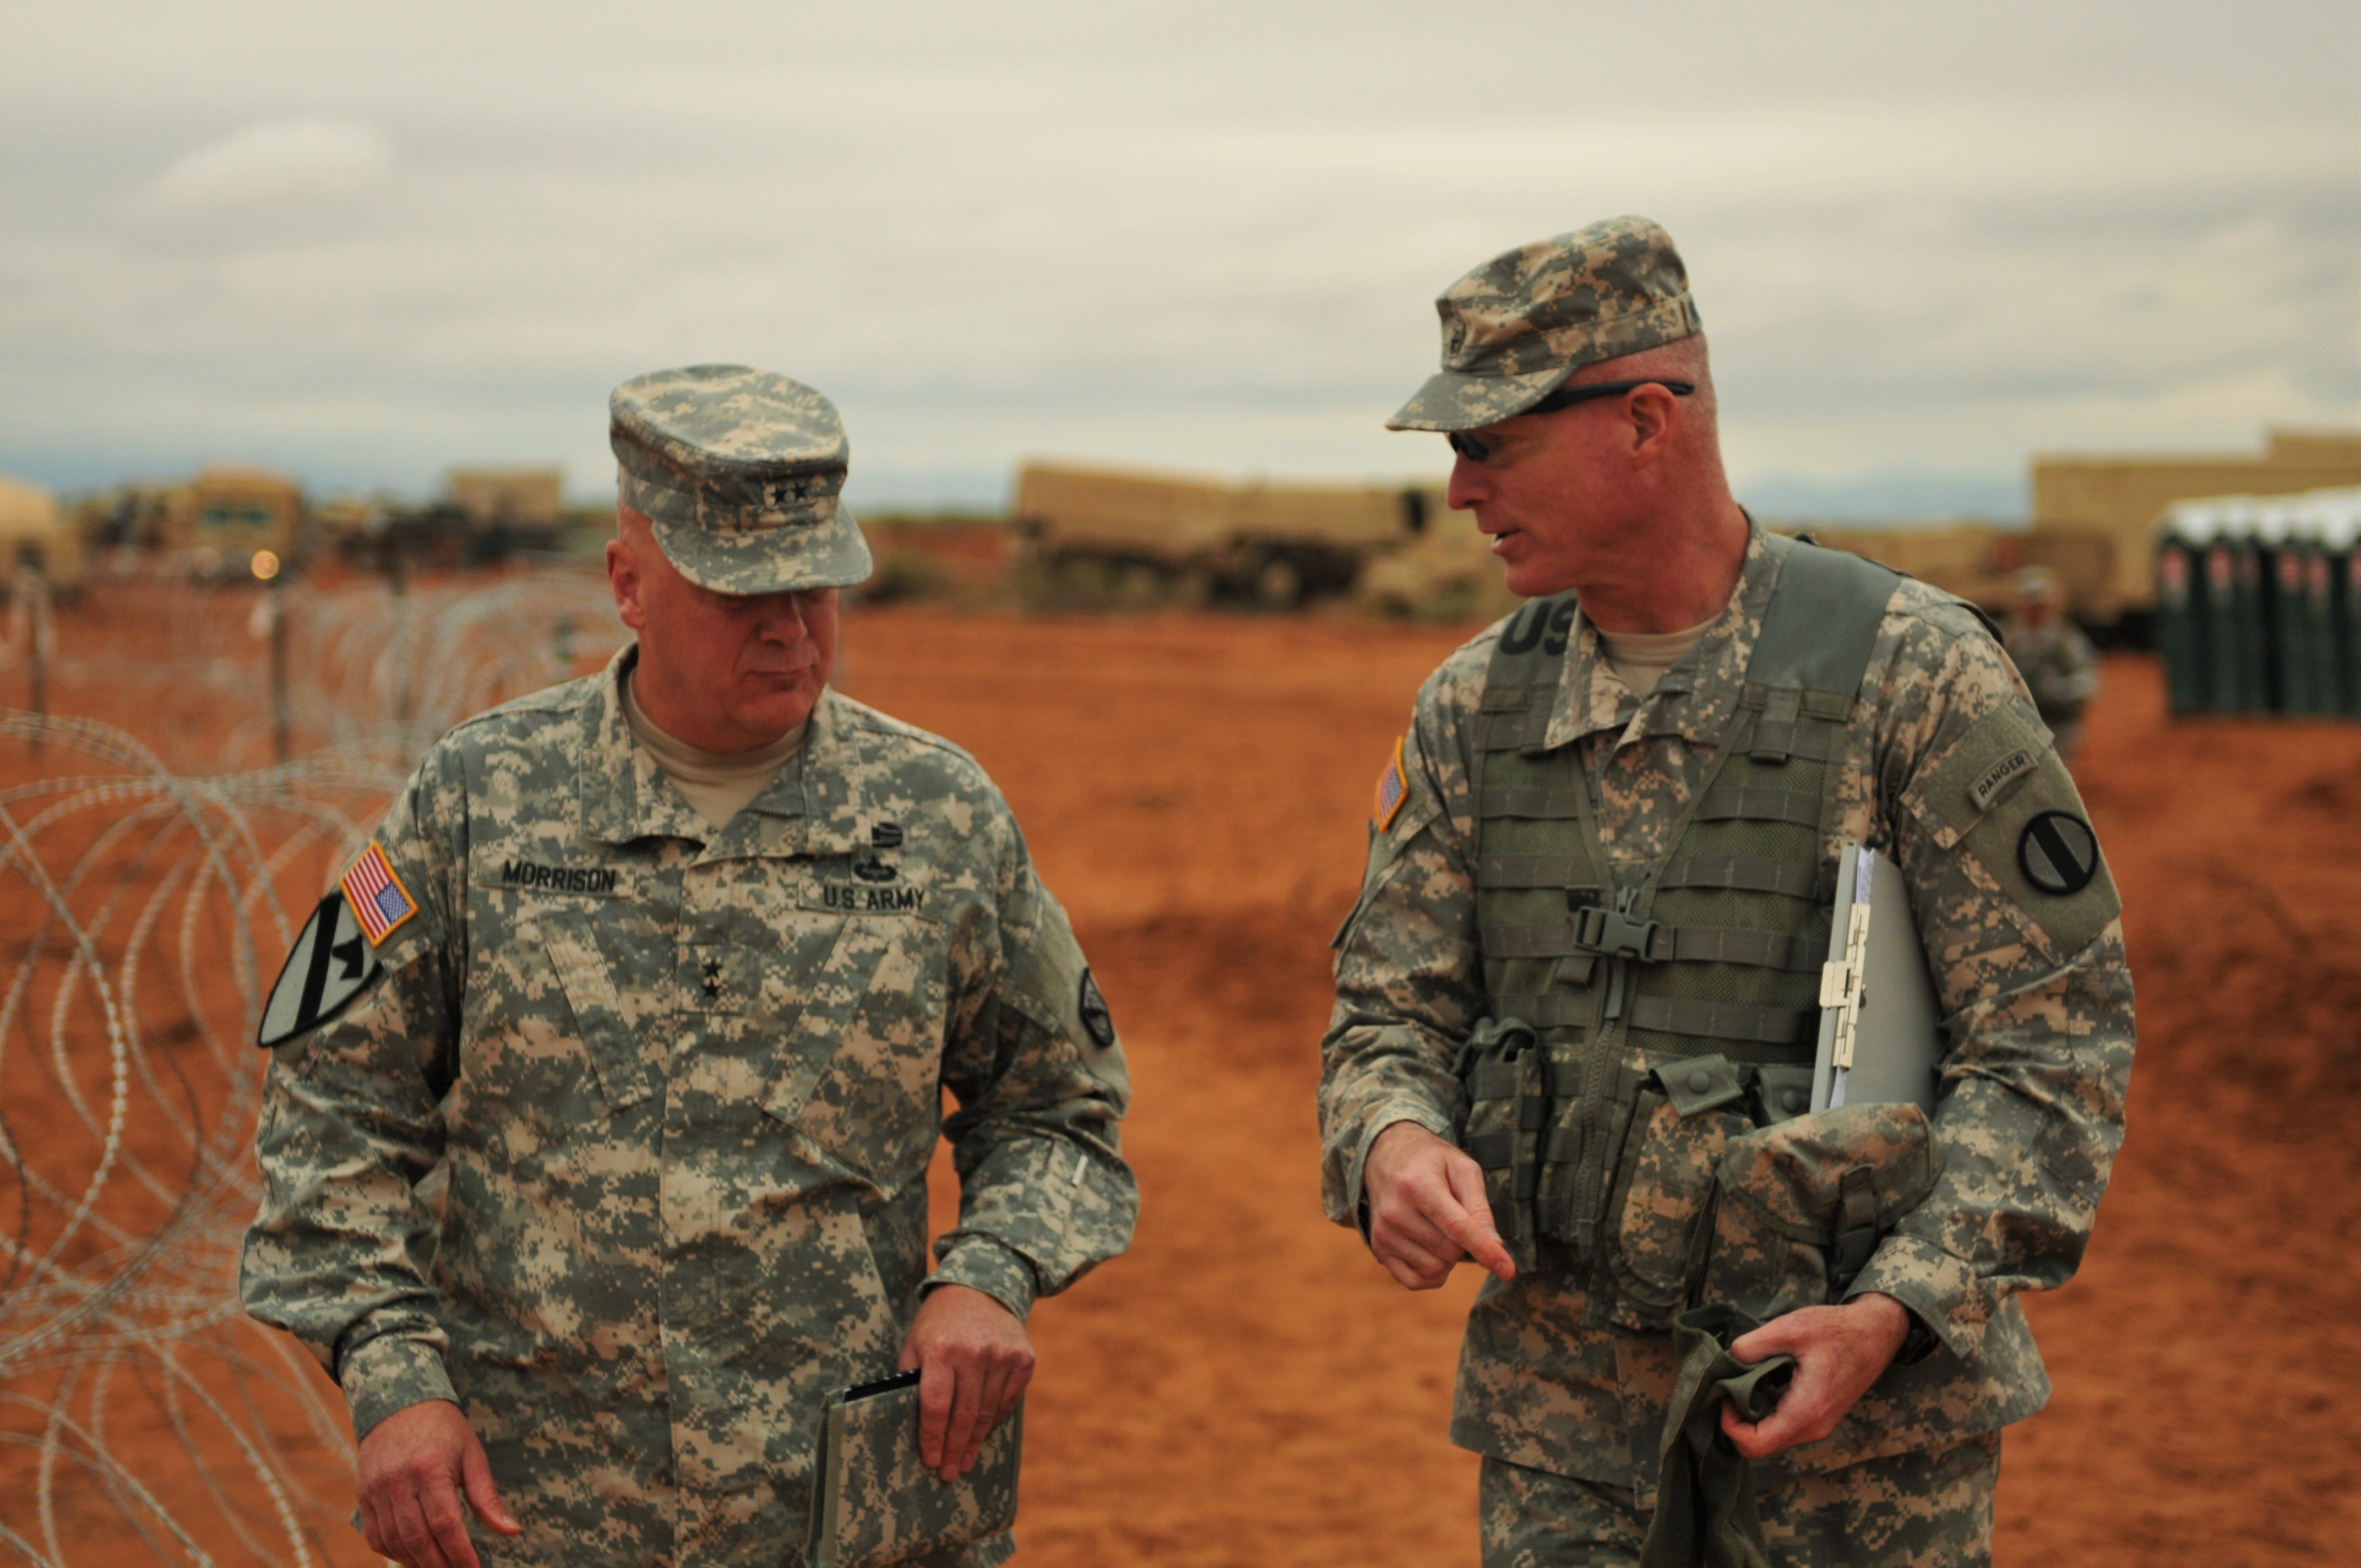 Maj. Gen. John Morrison (left), commanding general of Network Enterprise Technology Command, and Brig Gen. Terrence McKenrick, commanding general of Brigade Modernization Command (BMC), converse during a distinguished visitor's day at Fort Bliss, Texas, Oct. 5, 2015. BMC is the primary proponent for Network Integration Evaluation 16.1, which is focused on future force development, training readiness, and multinational interoperability with participants from 13 partner nations, more than 10,000 service members, and 3,000 civilians. (Capt. Ryan Jernegan, 24th Press Camp Headquarters/Army)